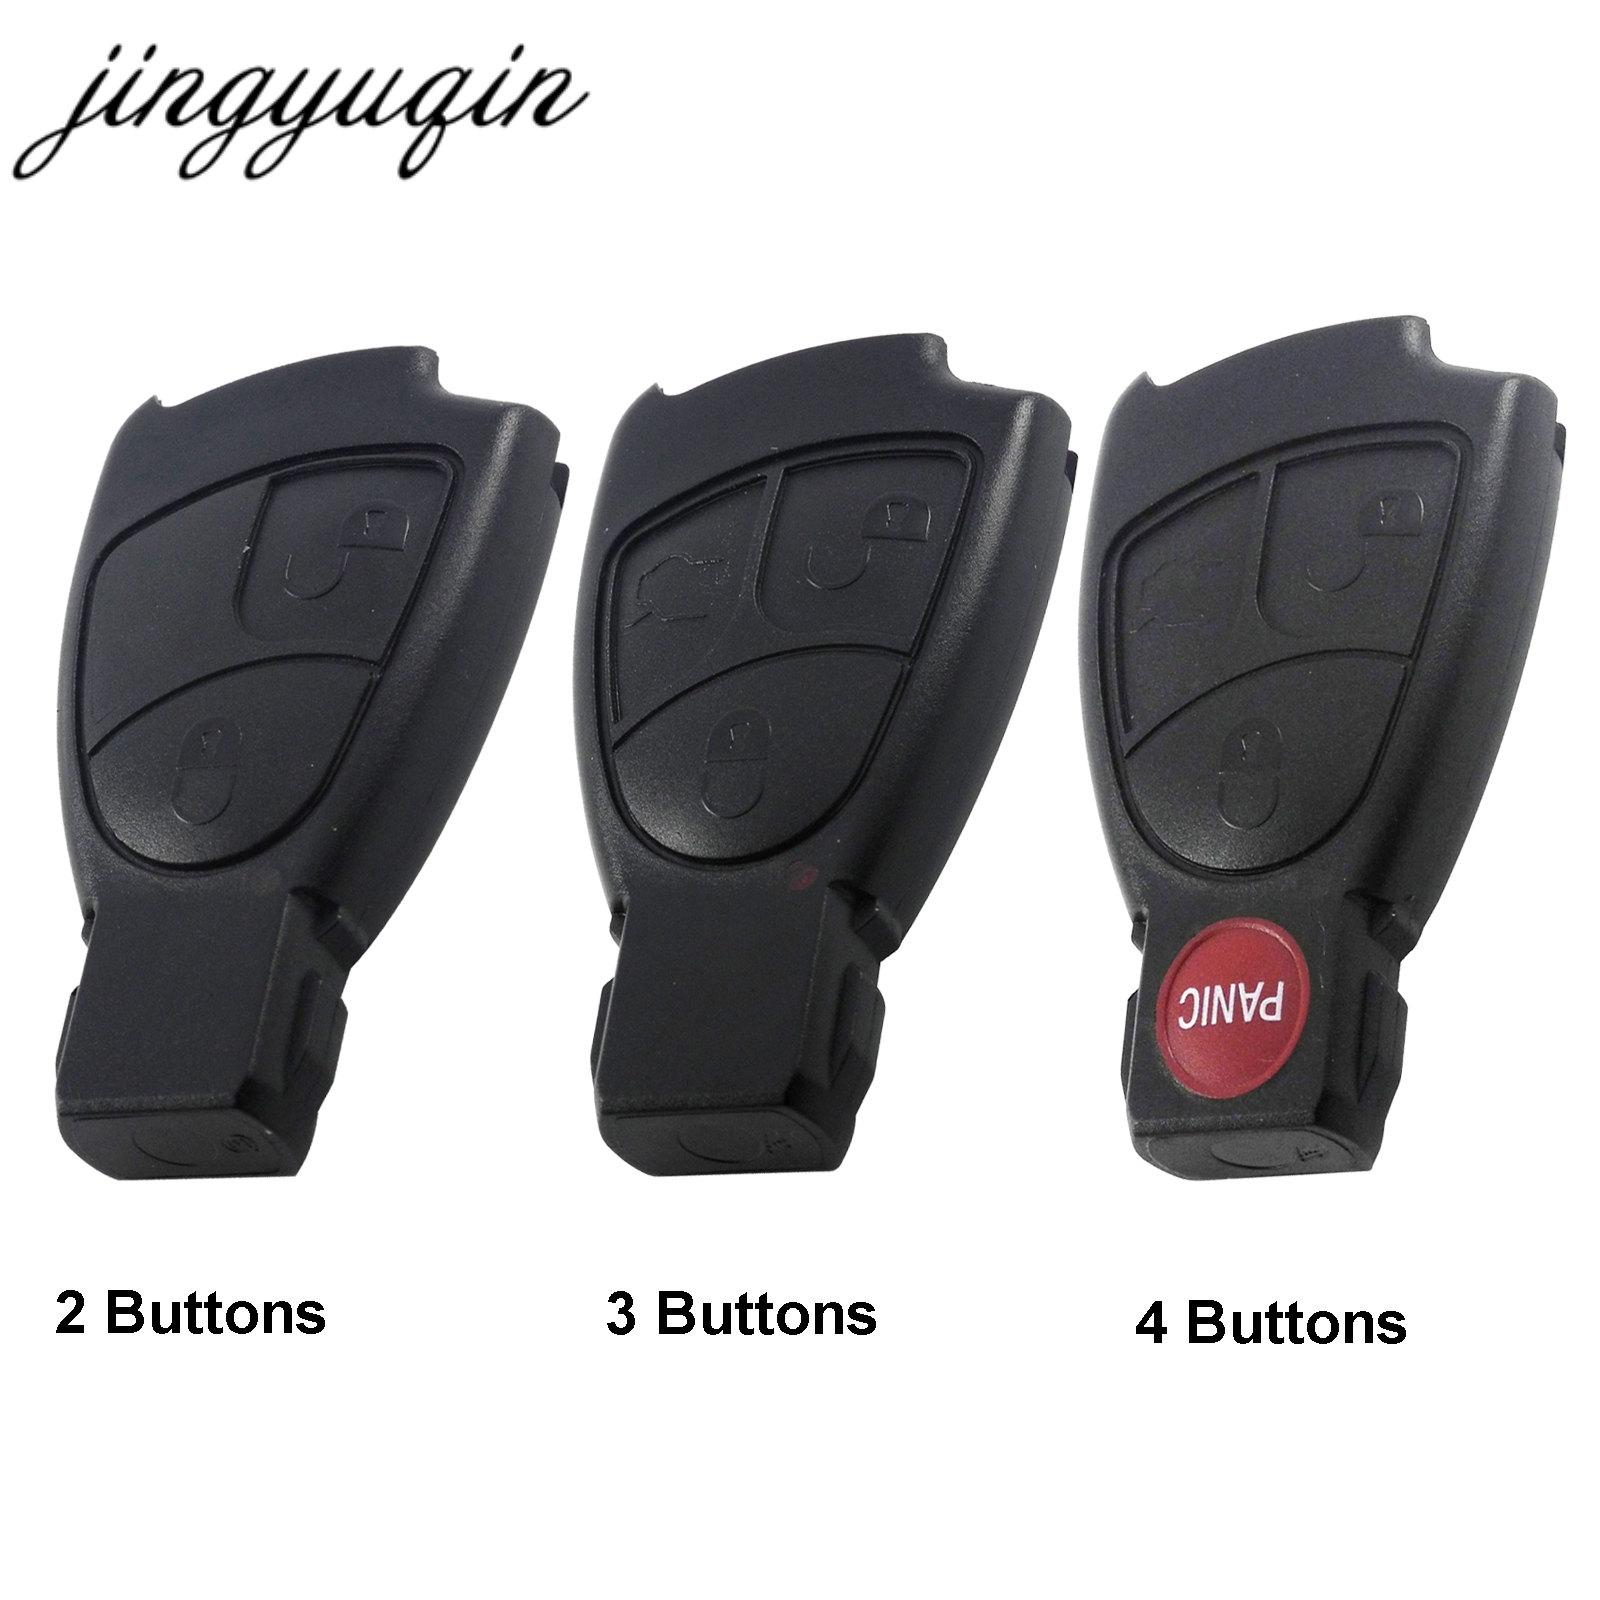 jingyuqin 3 Buttons Remote Car Key Fob Case For Mercedes Benz B C E ML S CLK CL Vito 639 3BT Rreplacement Shelljingyuqin 3 Buttons Remote Car Key Fob Case For Mercedes Benz B C E ML S CLK CL Vito 639 3BT Rreplacement Shell